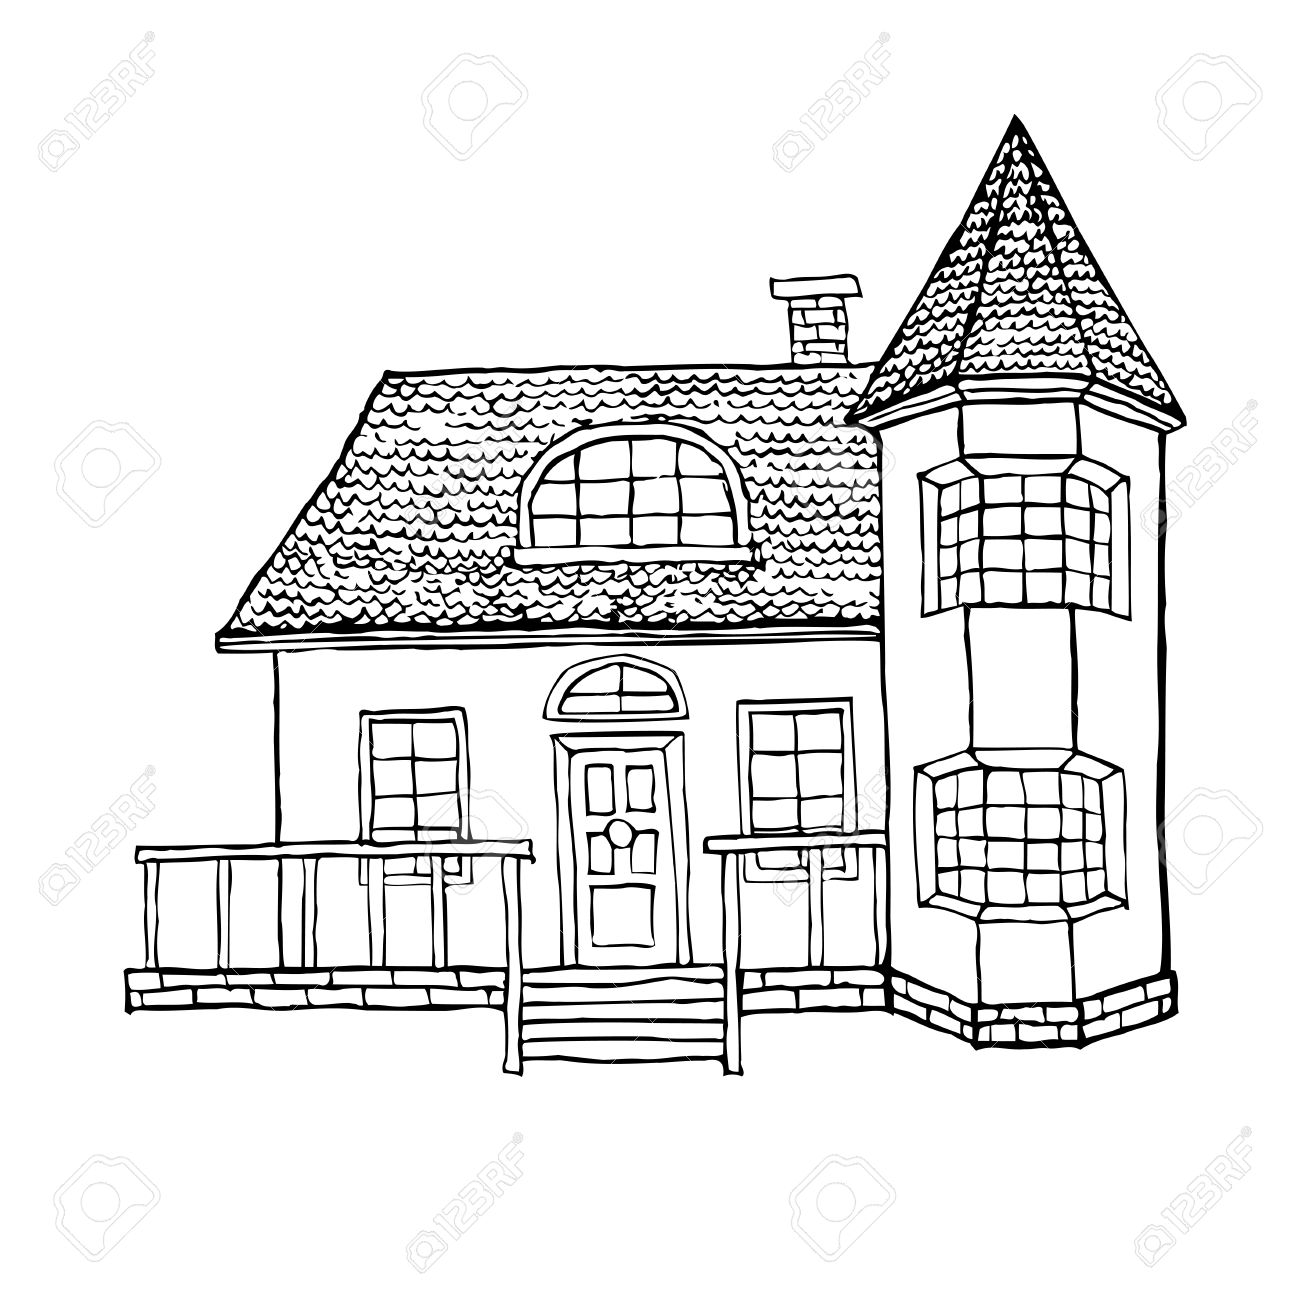 1300x1300 Village House With A Bay Window, A Turret, A Loft And A Terrace